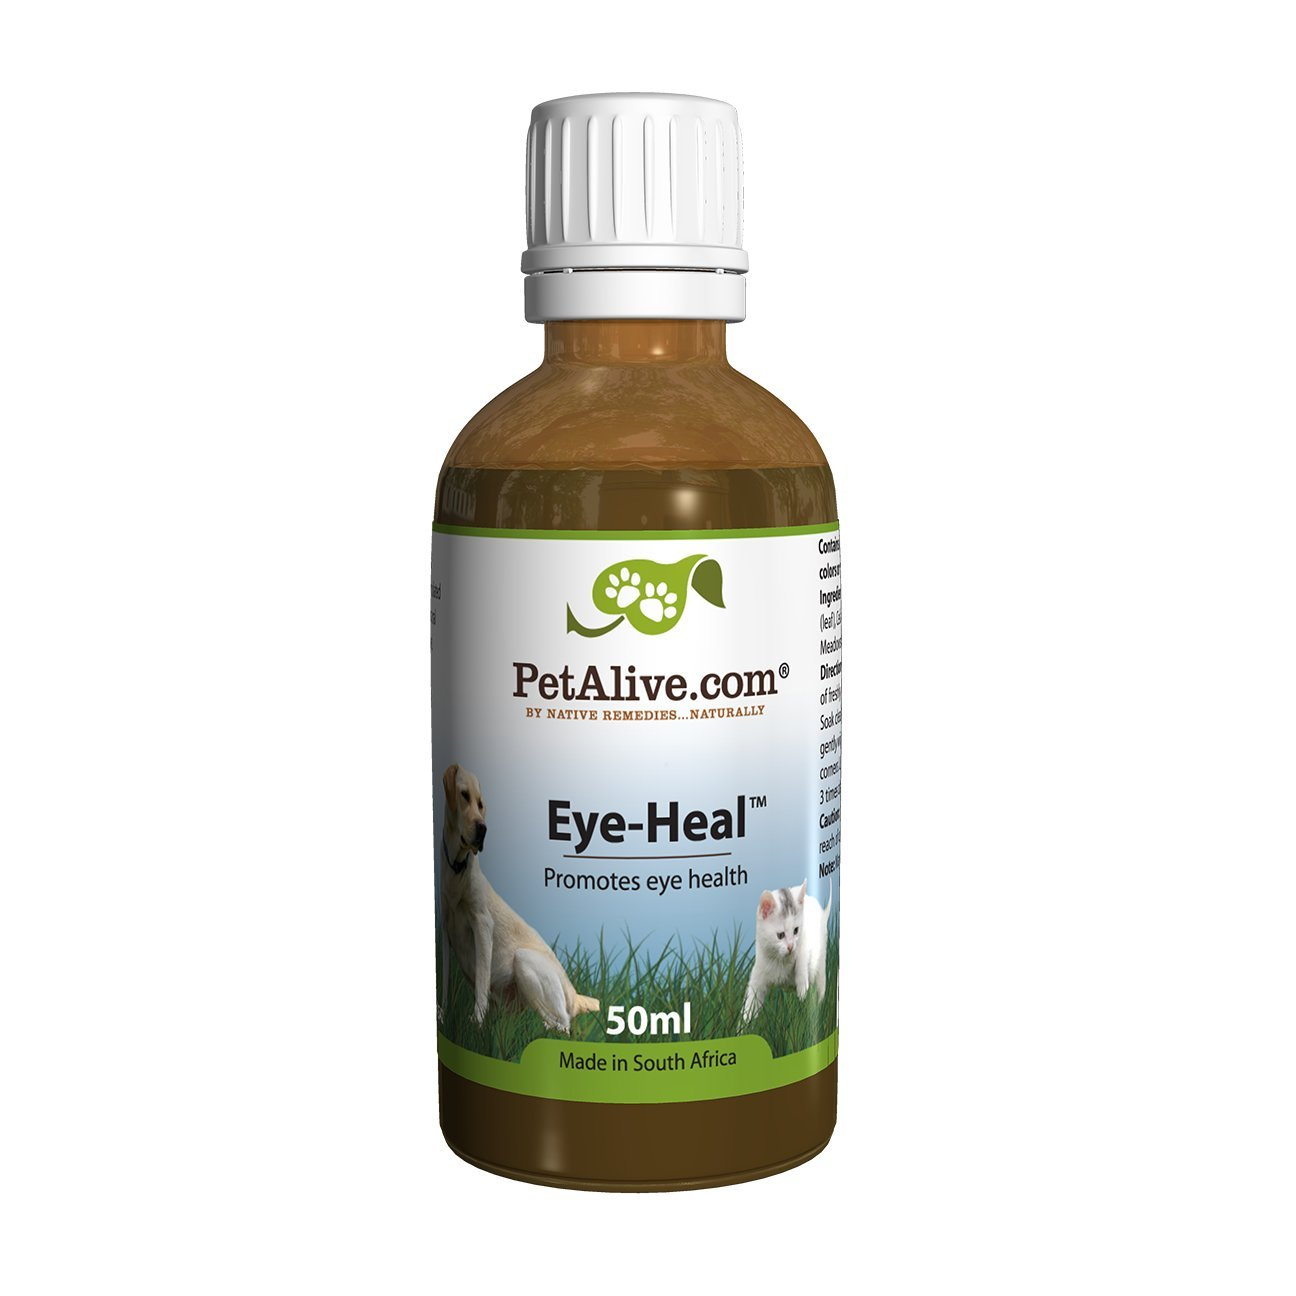 PetAlive Eye-Heal for Pet Eye Infections